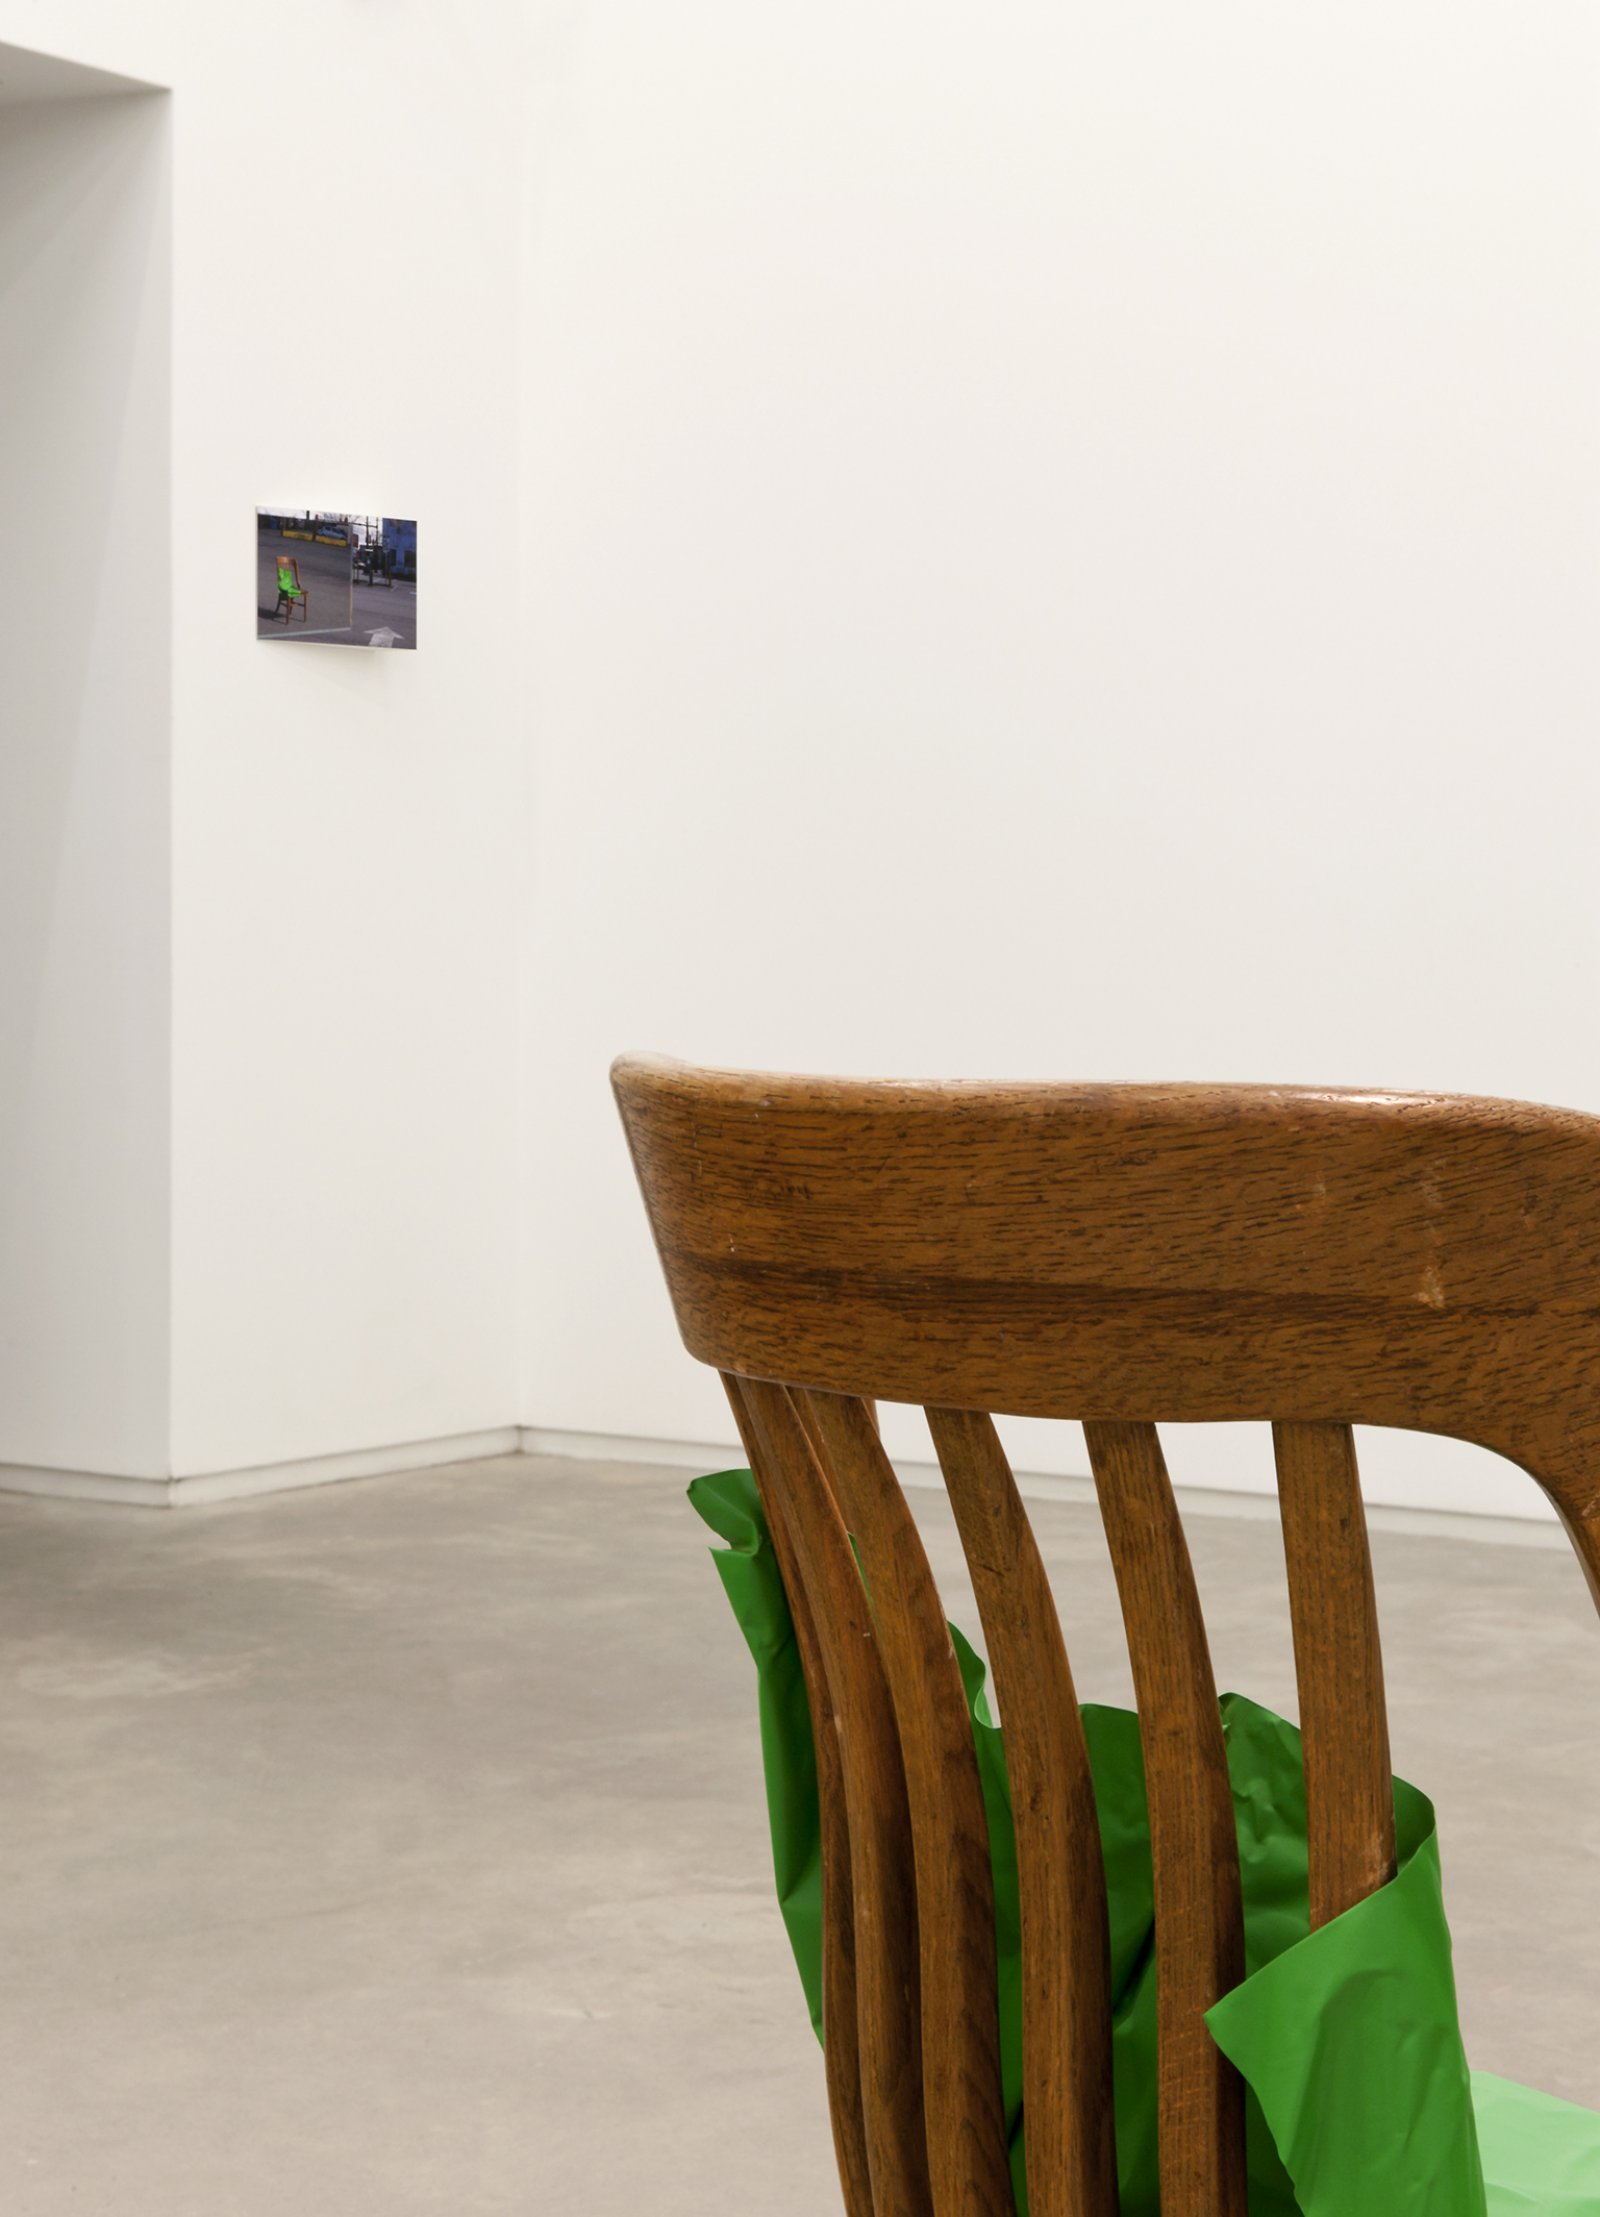 Judy Radul, Object Analysis Spectator Poem (Chair) (detail), 2012, painted copper, chair, colour photograph, chair: 33 x 18 x 18 in. (84 x 46 x 44 cm), photograph: 8 x 12 x 3 in. (20 x 29 x 8 cm) by Judy Radul